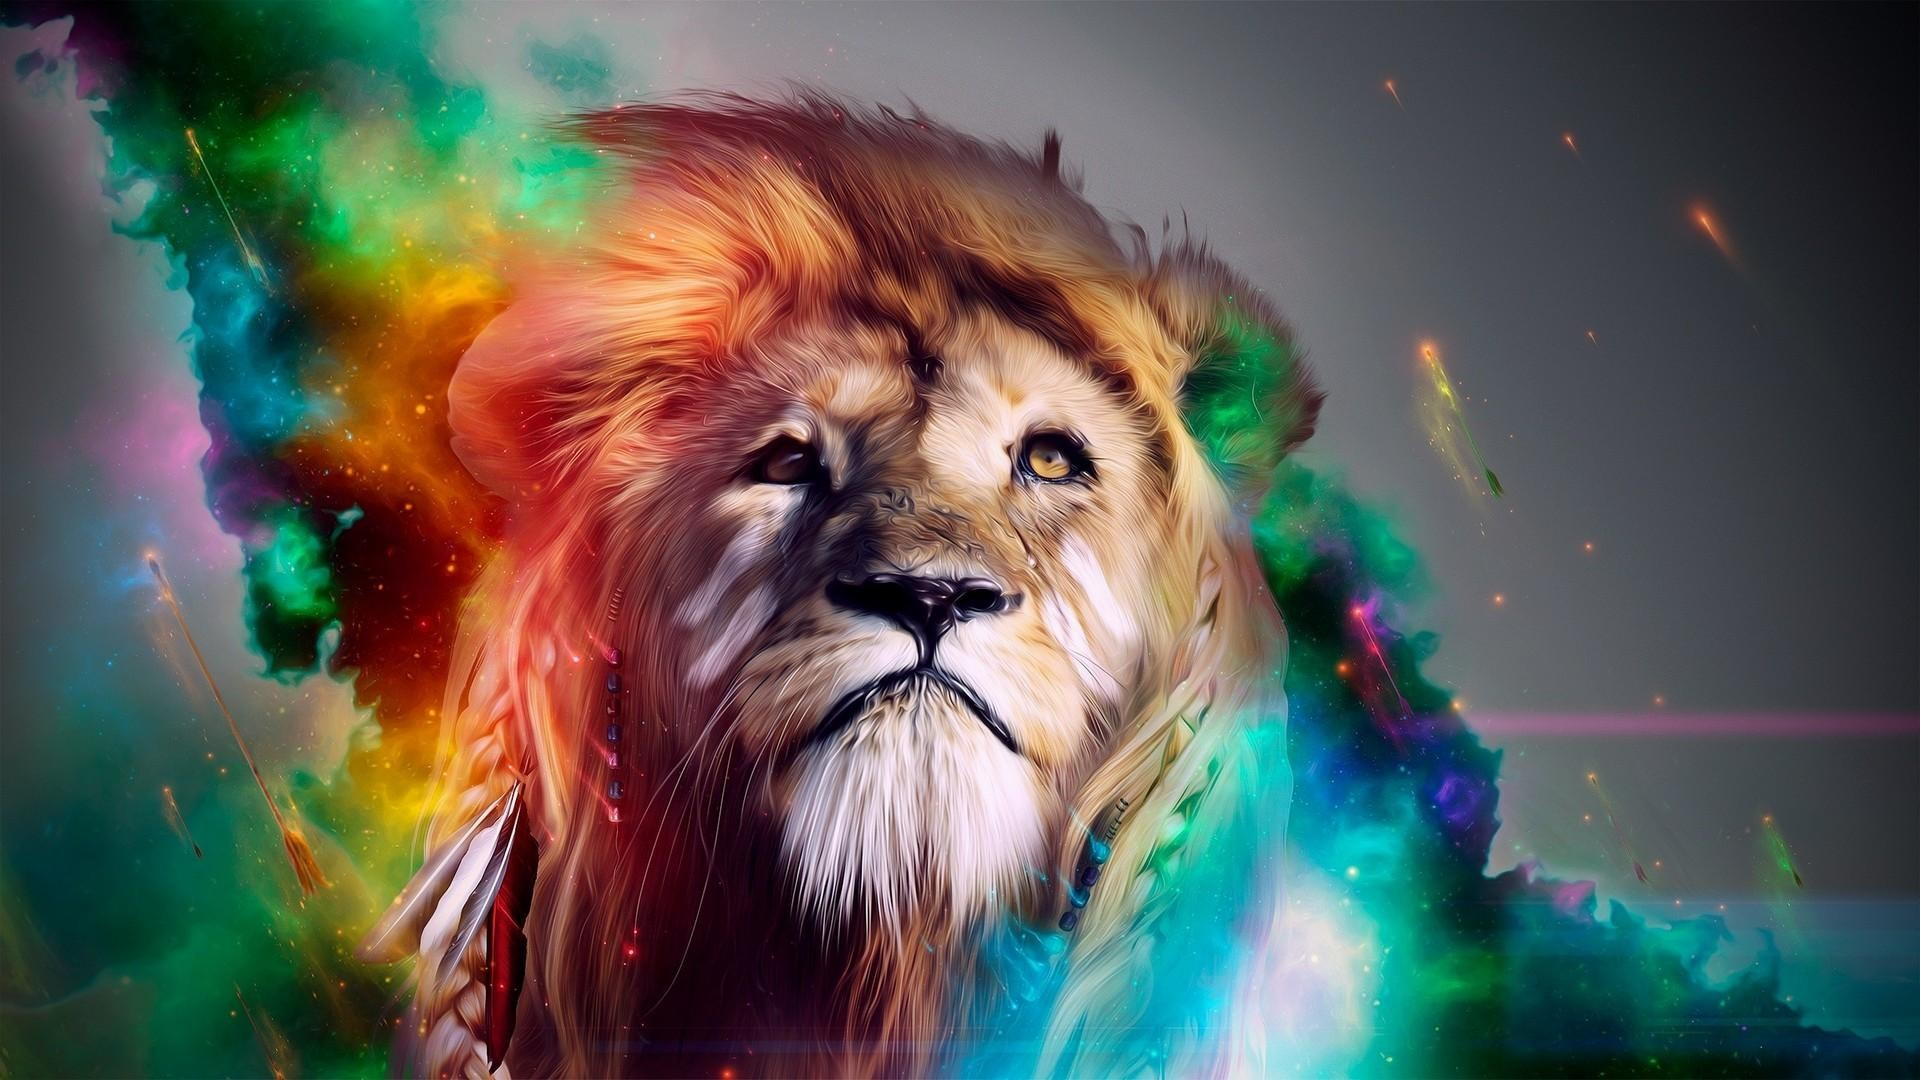 Explore Lion Wallpaper, Hipster Wallpaper, and more!